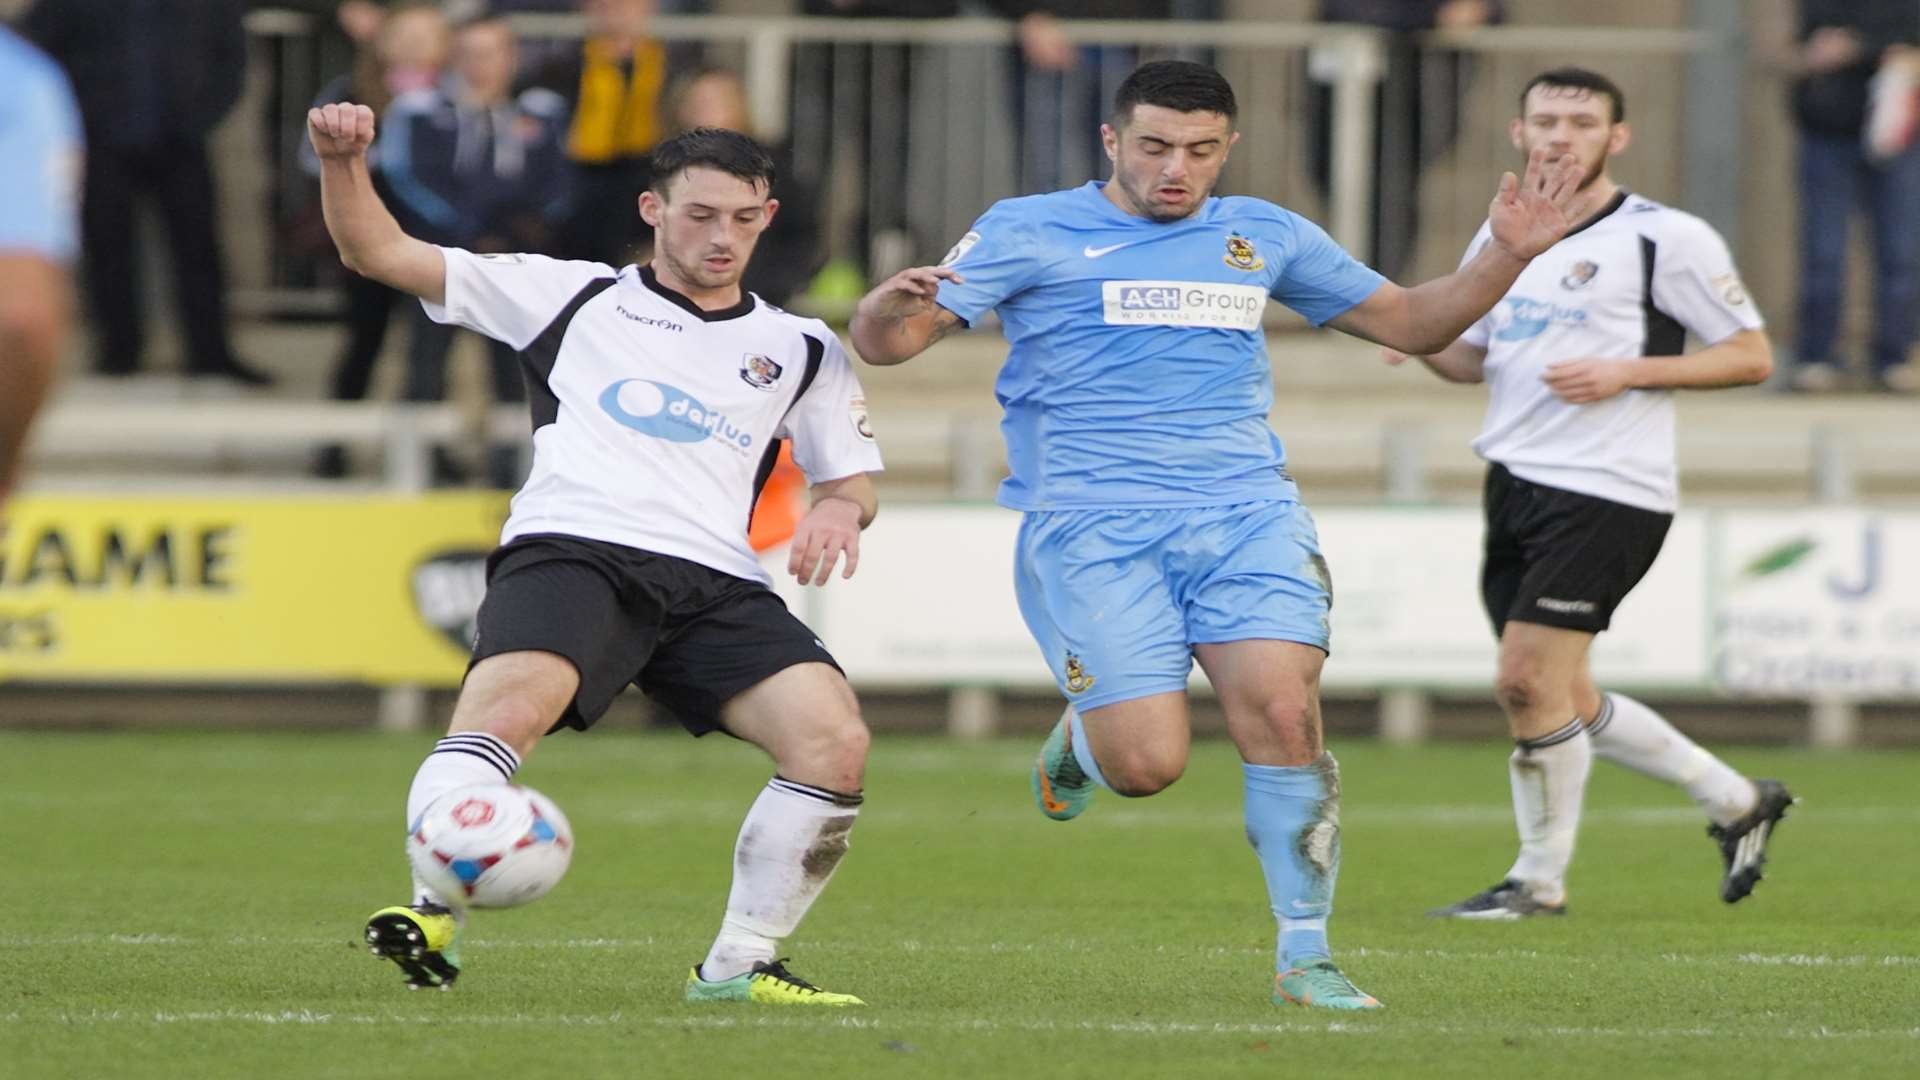 Callum Driver (left) in action for Dartford against Southport Picture: Andy Payton